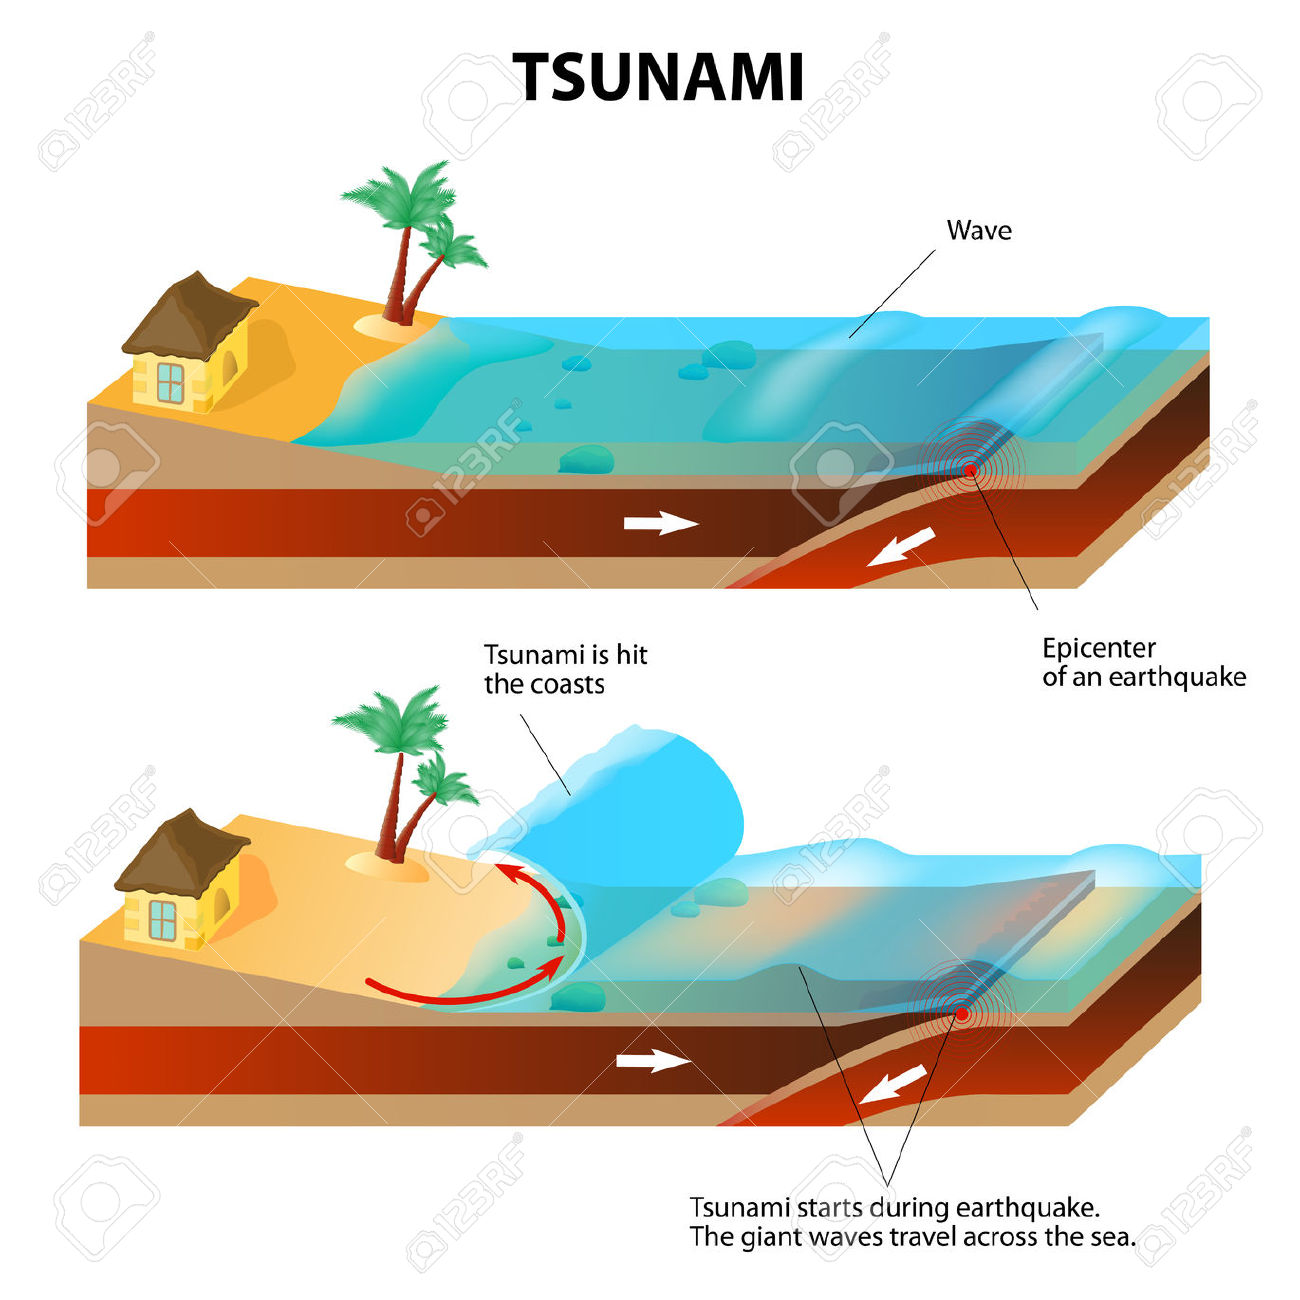 A Tsunami Is A Series Of Huge Waves. It Washes Against The Coast.